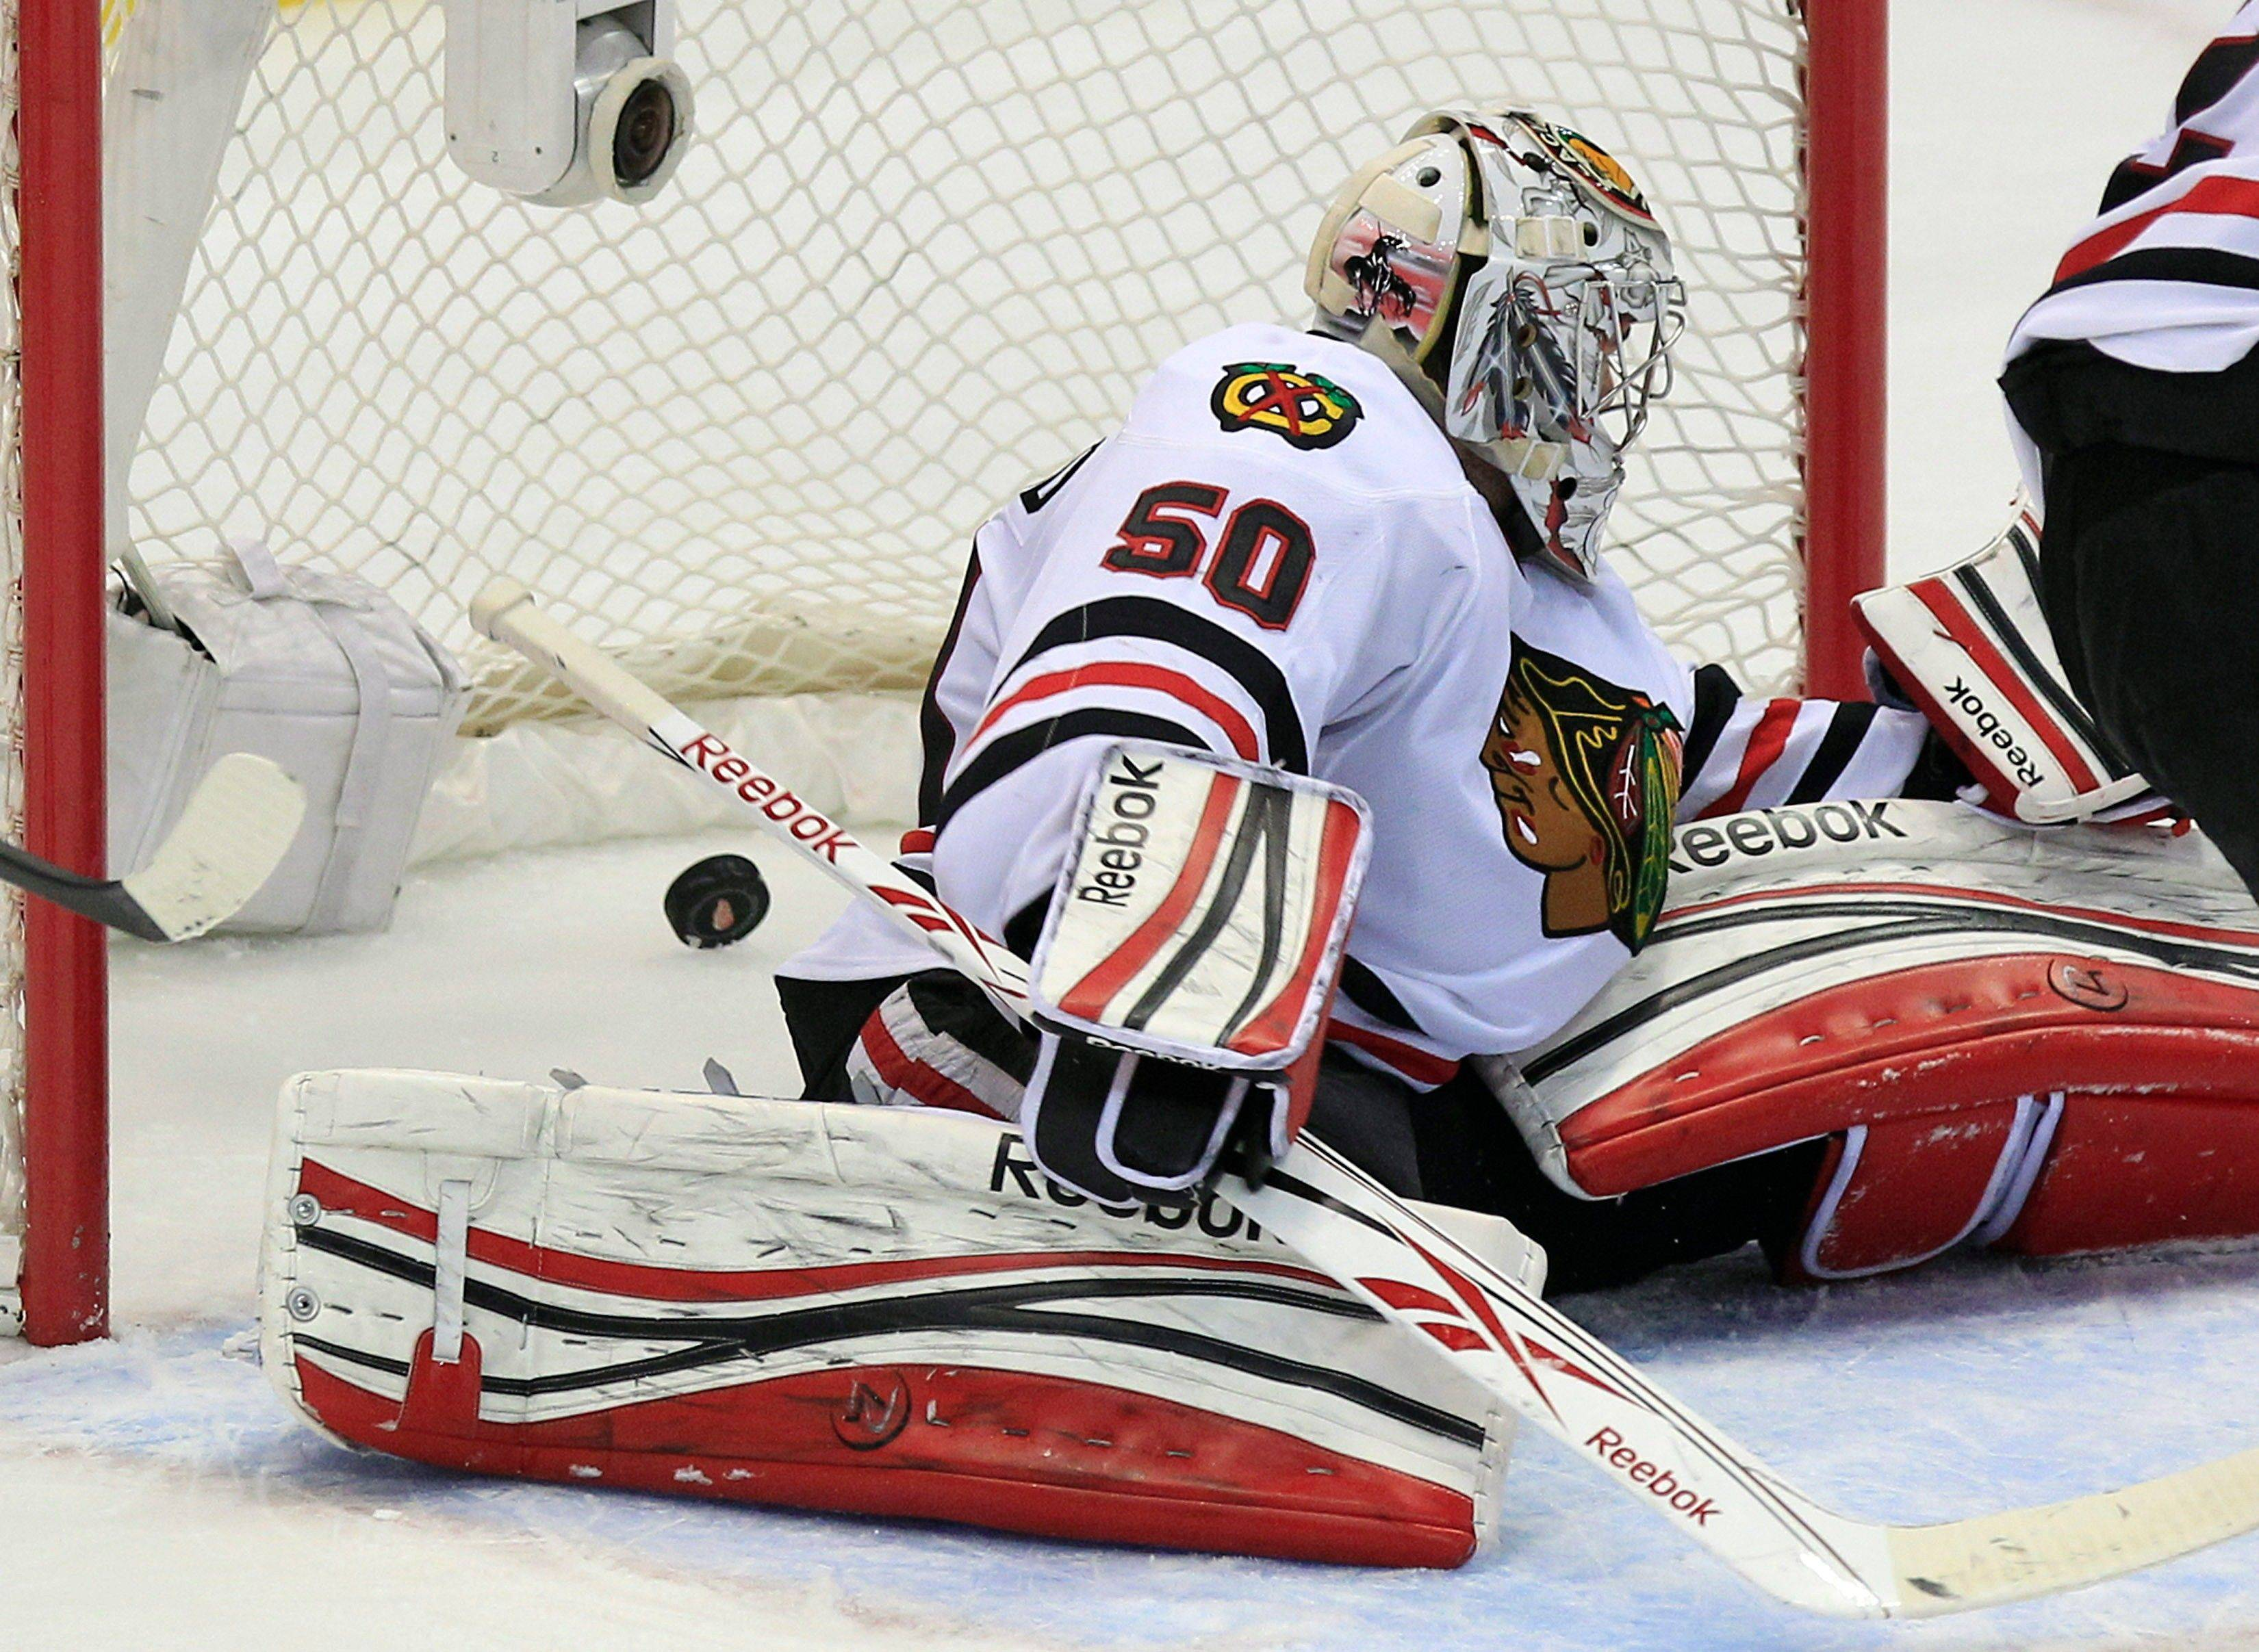 Blackhawks goalie Corey Crawford stretches but fails to block the game-winning goal by Detroit's Todd Bertuzzi during the overtime period. Crawford actually was the star of the game for the Hawks, keeping them in the game in the first period.